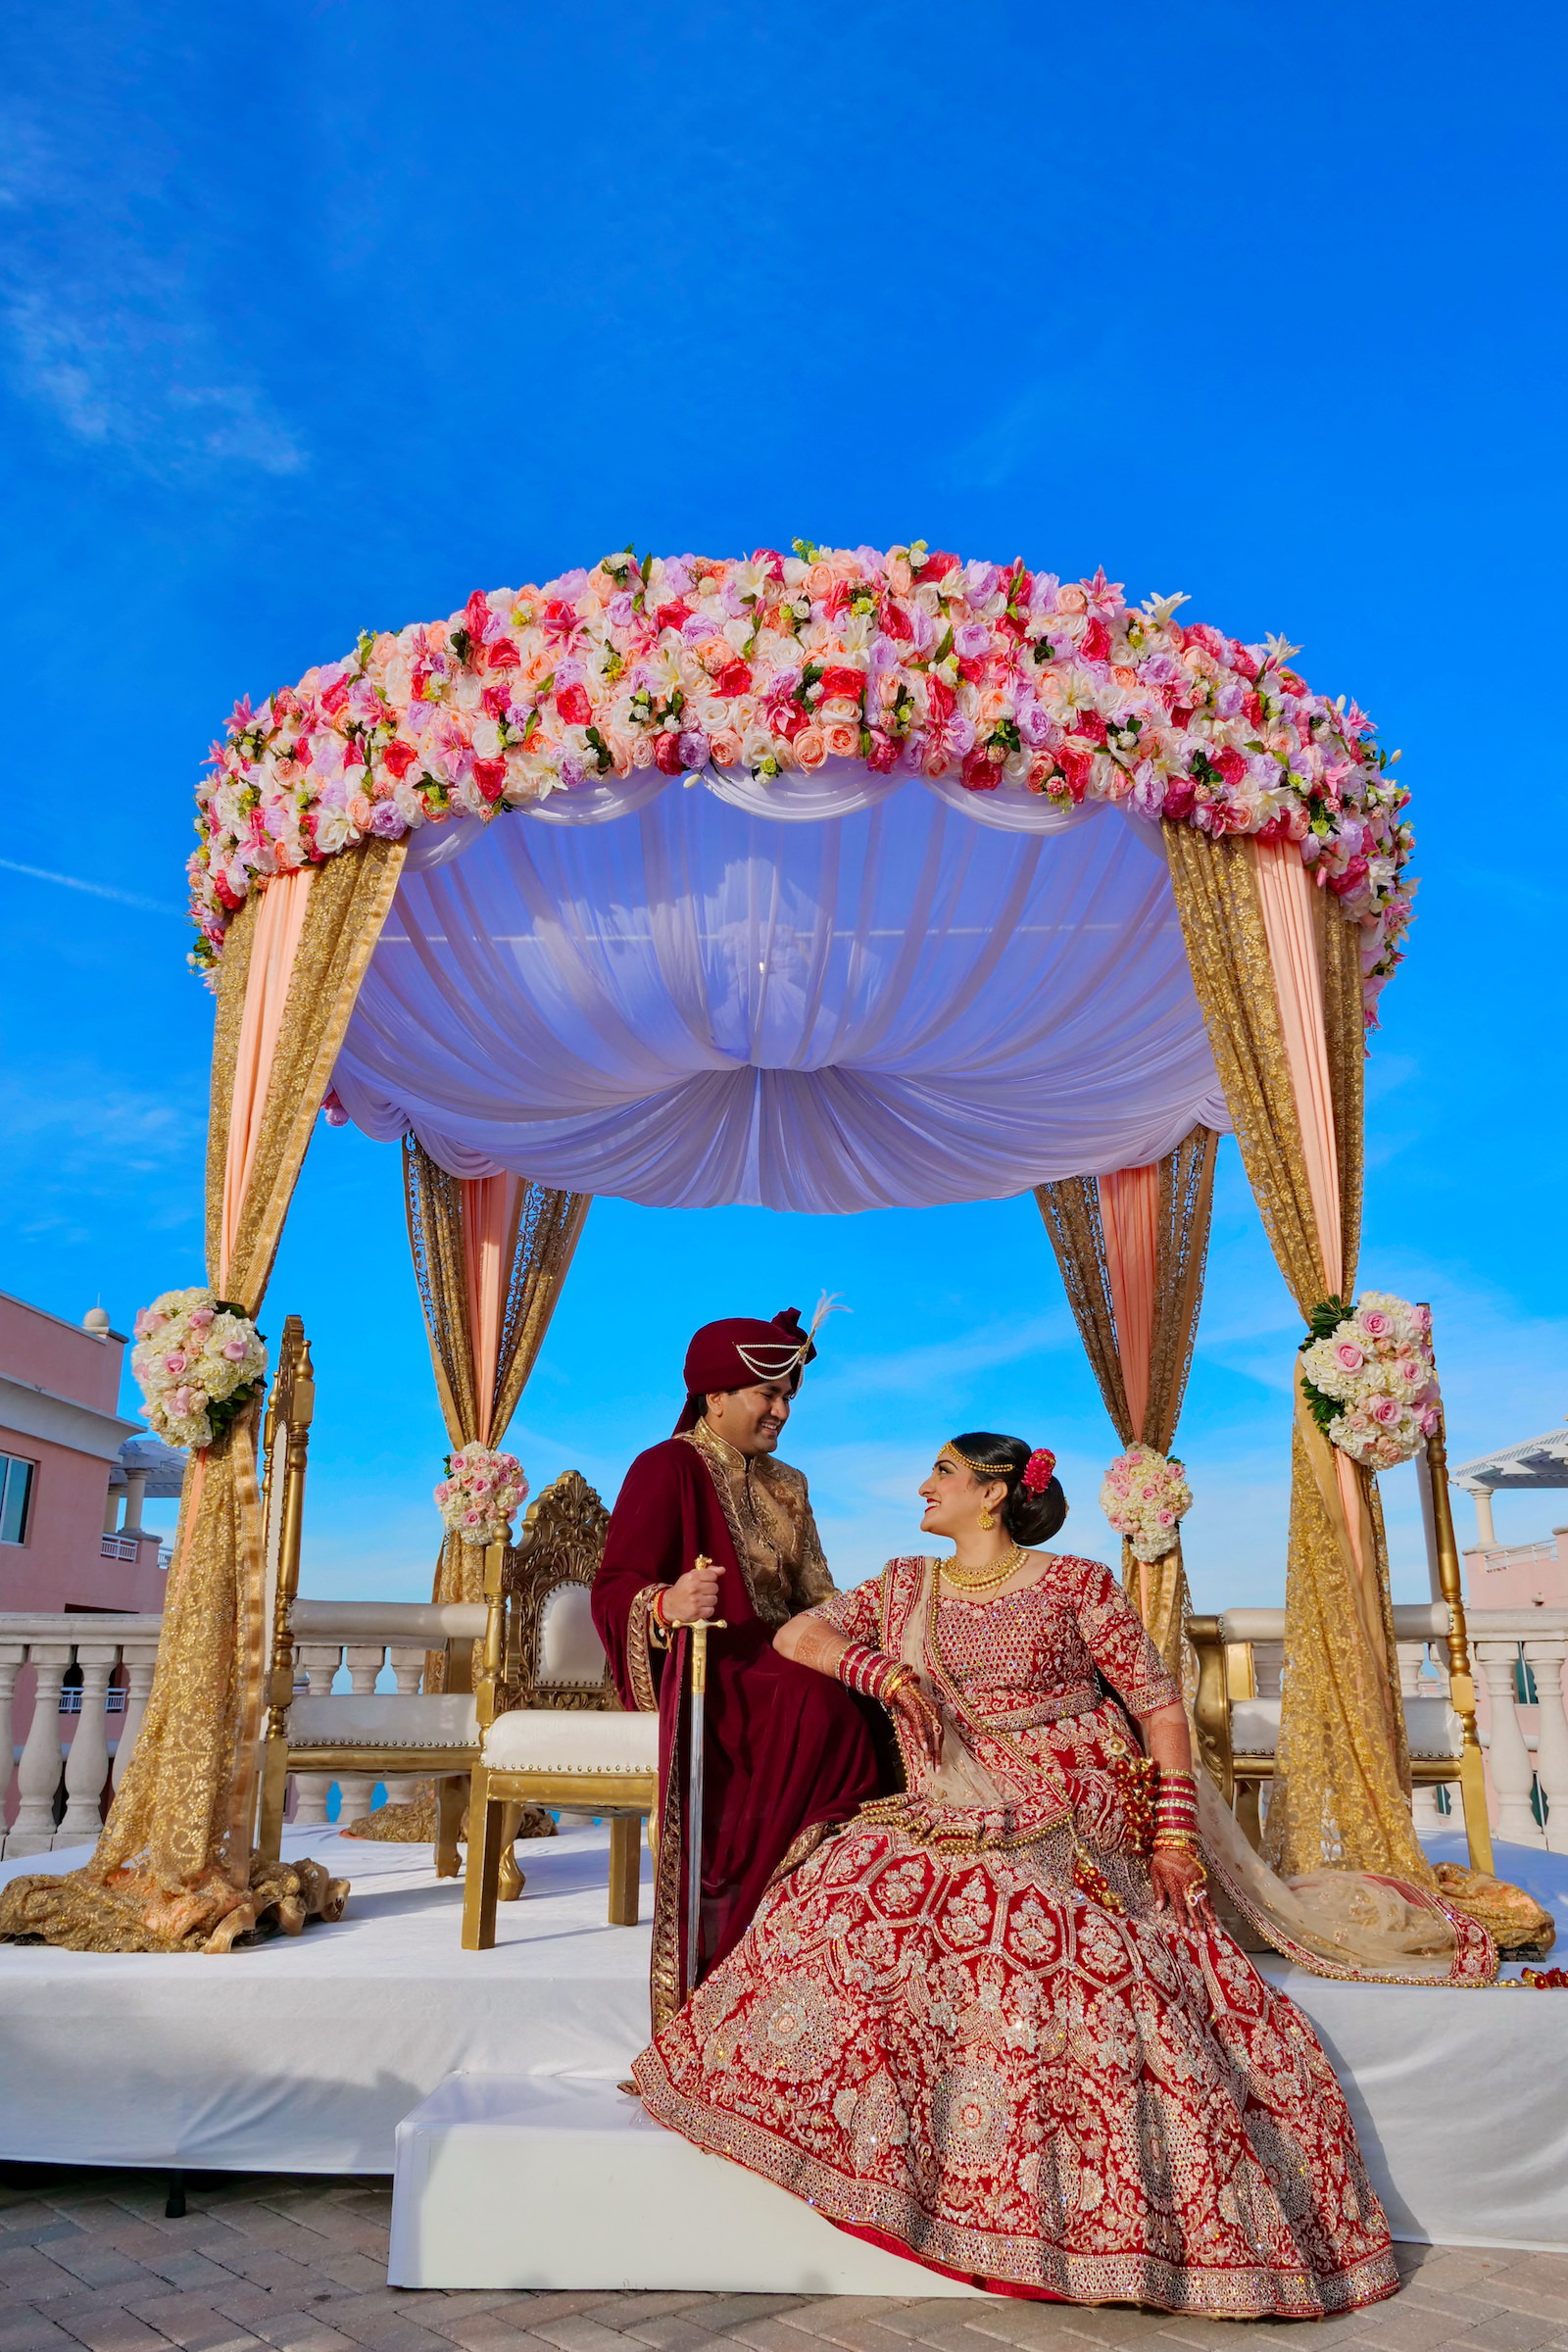 Bride and Groom Outdoor Portrait | Traditional Red and Gold Indian Wedding Dress Lehenga Saree | Rooftop Indian Wedding Ceremony at Clearwater Wedding Venue Hyatt Regency Clearwater Beach | Pink and Gold Mandap with Draping